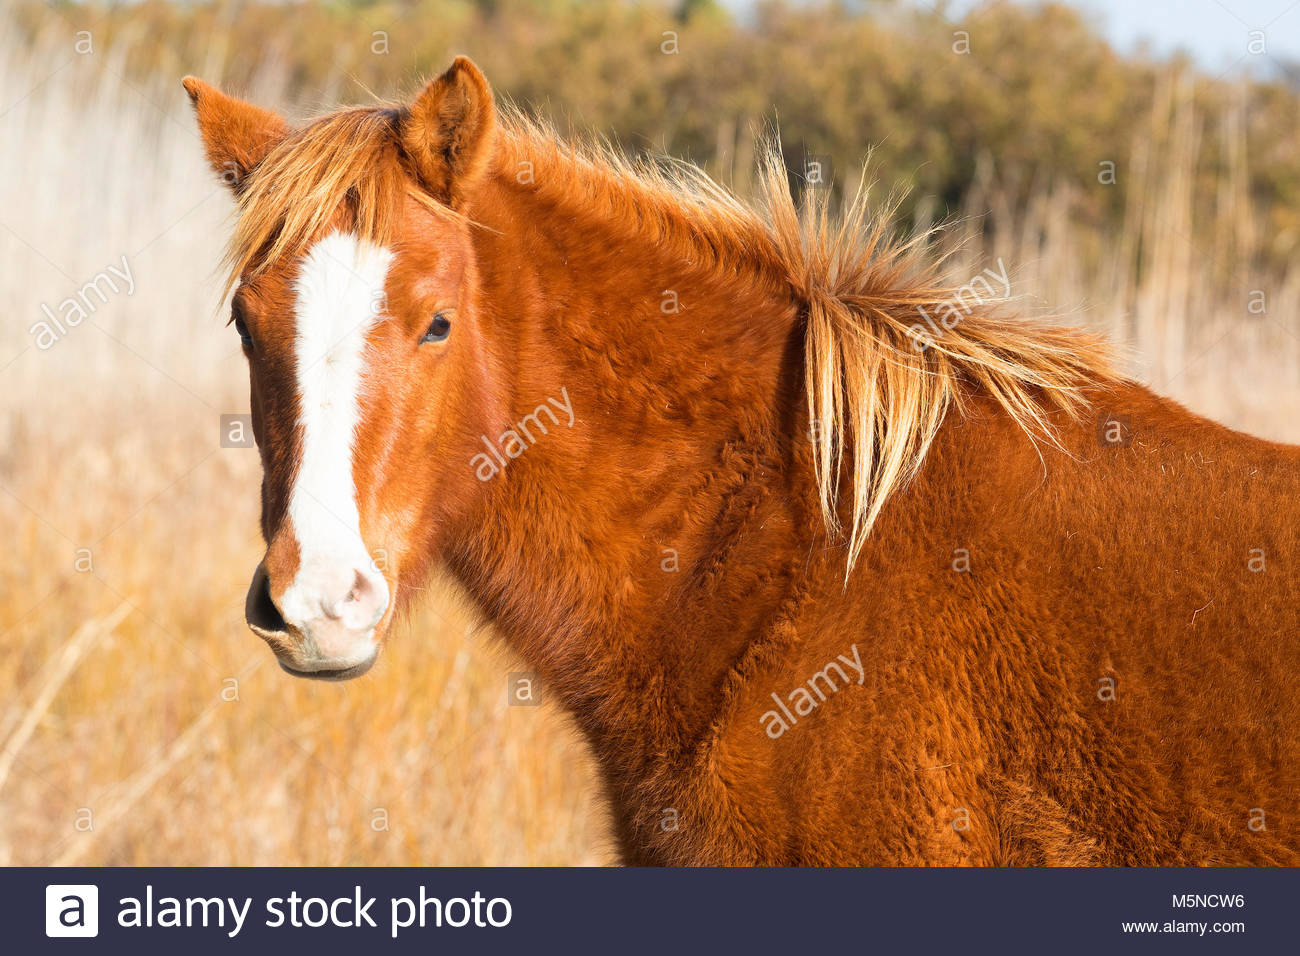 A Chincoteague pony (Equus caballus), also known as an Assateague horse, poses with a wind-blown mane in a marsh - Stock Image